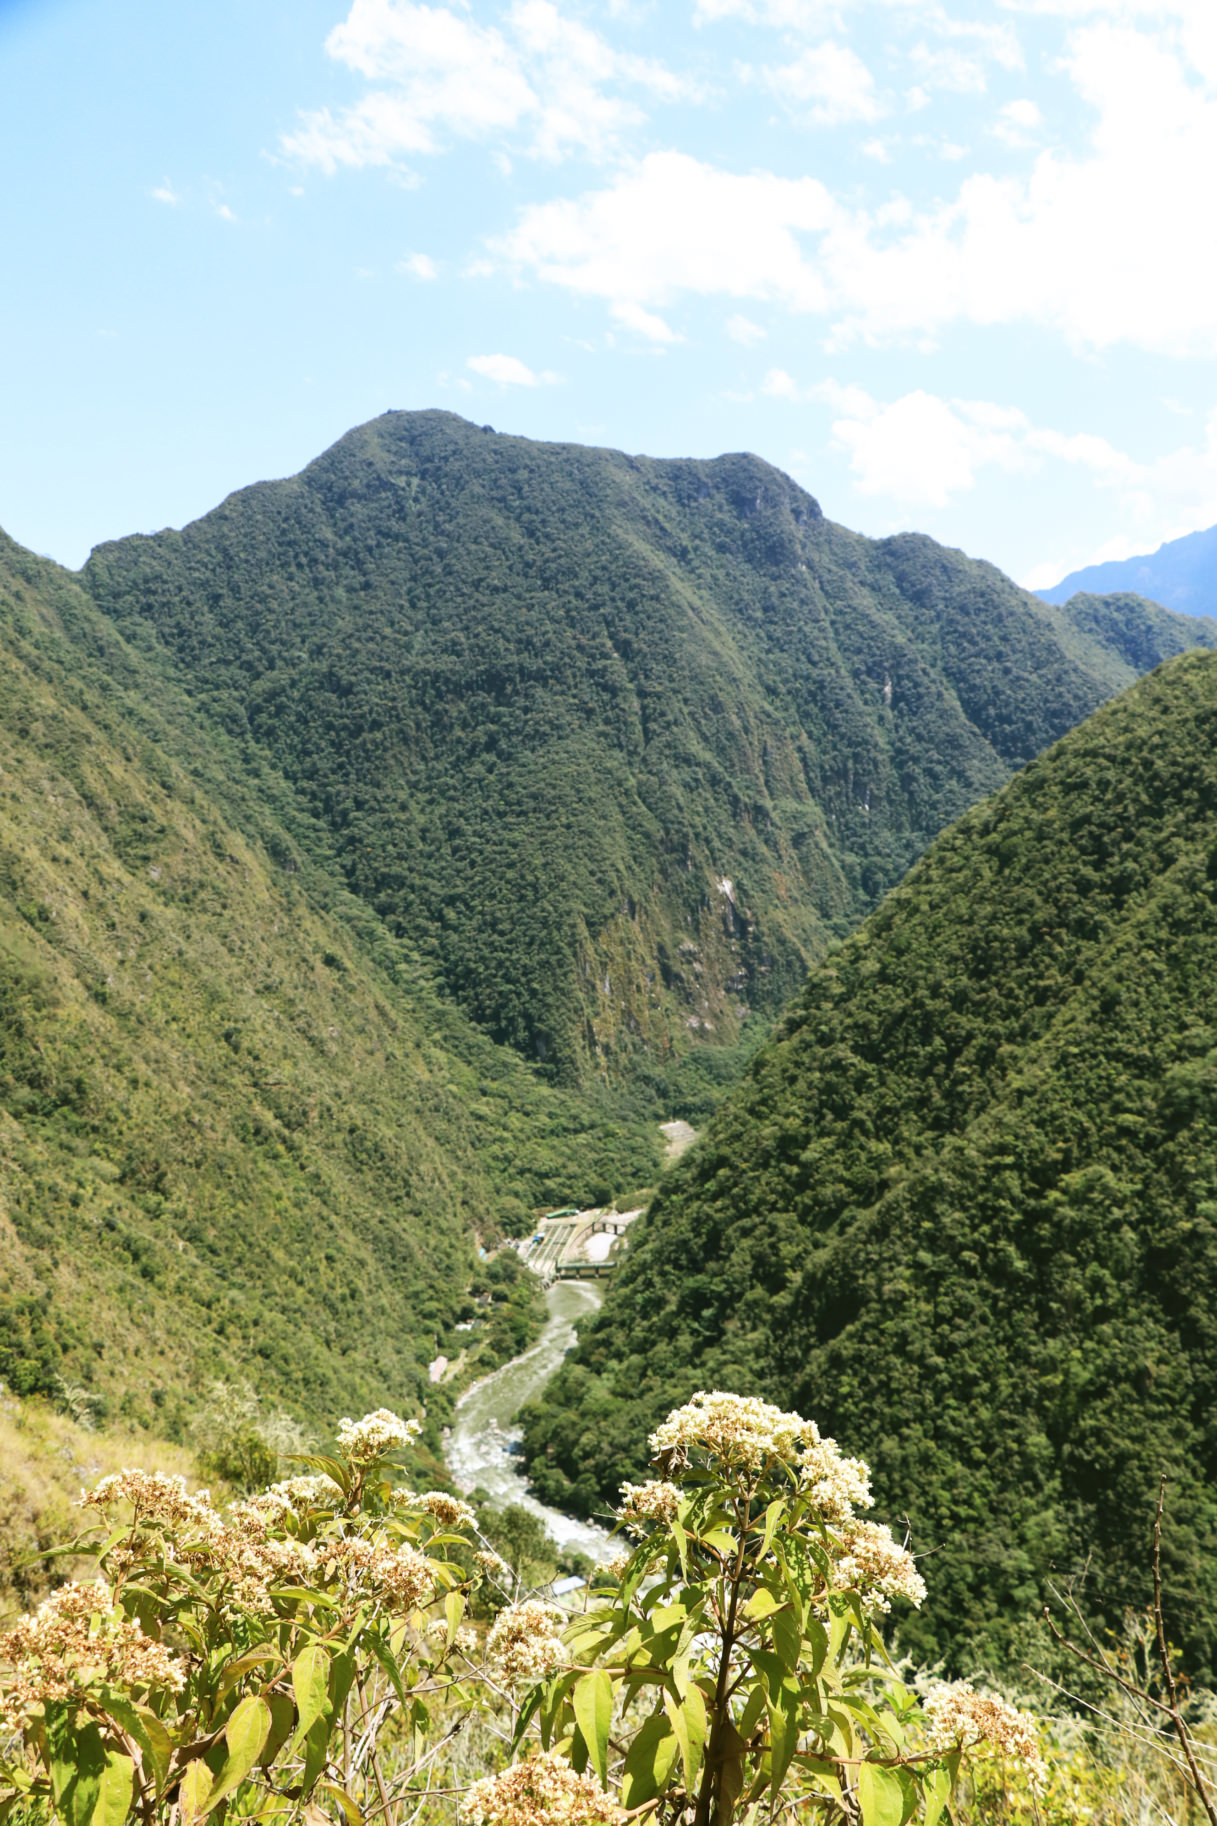 View of the Urubamba River from the Inca Trail Express